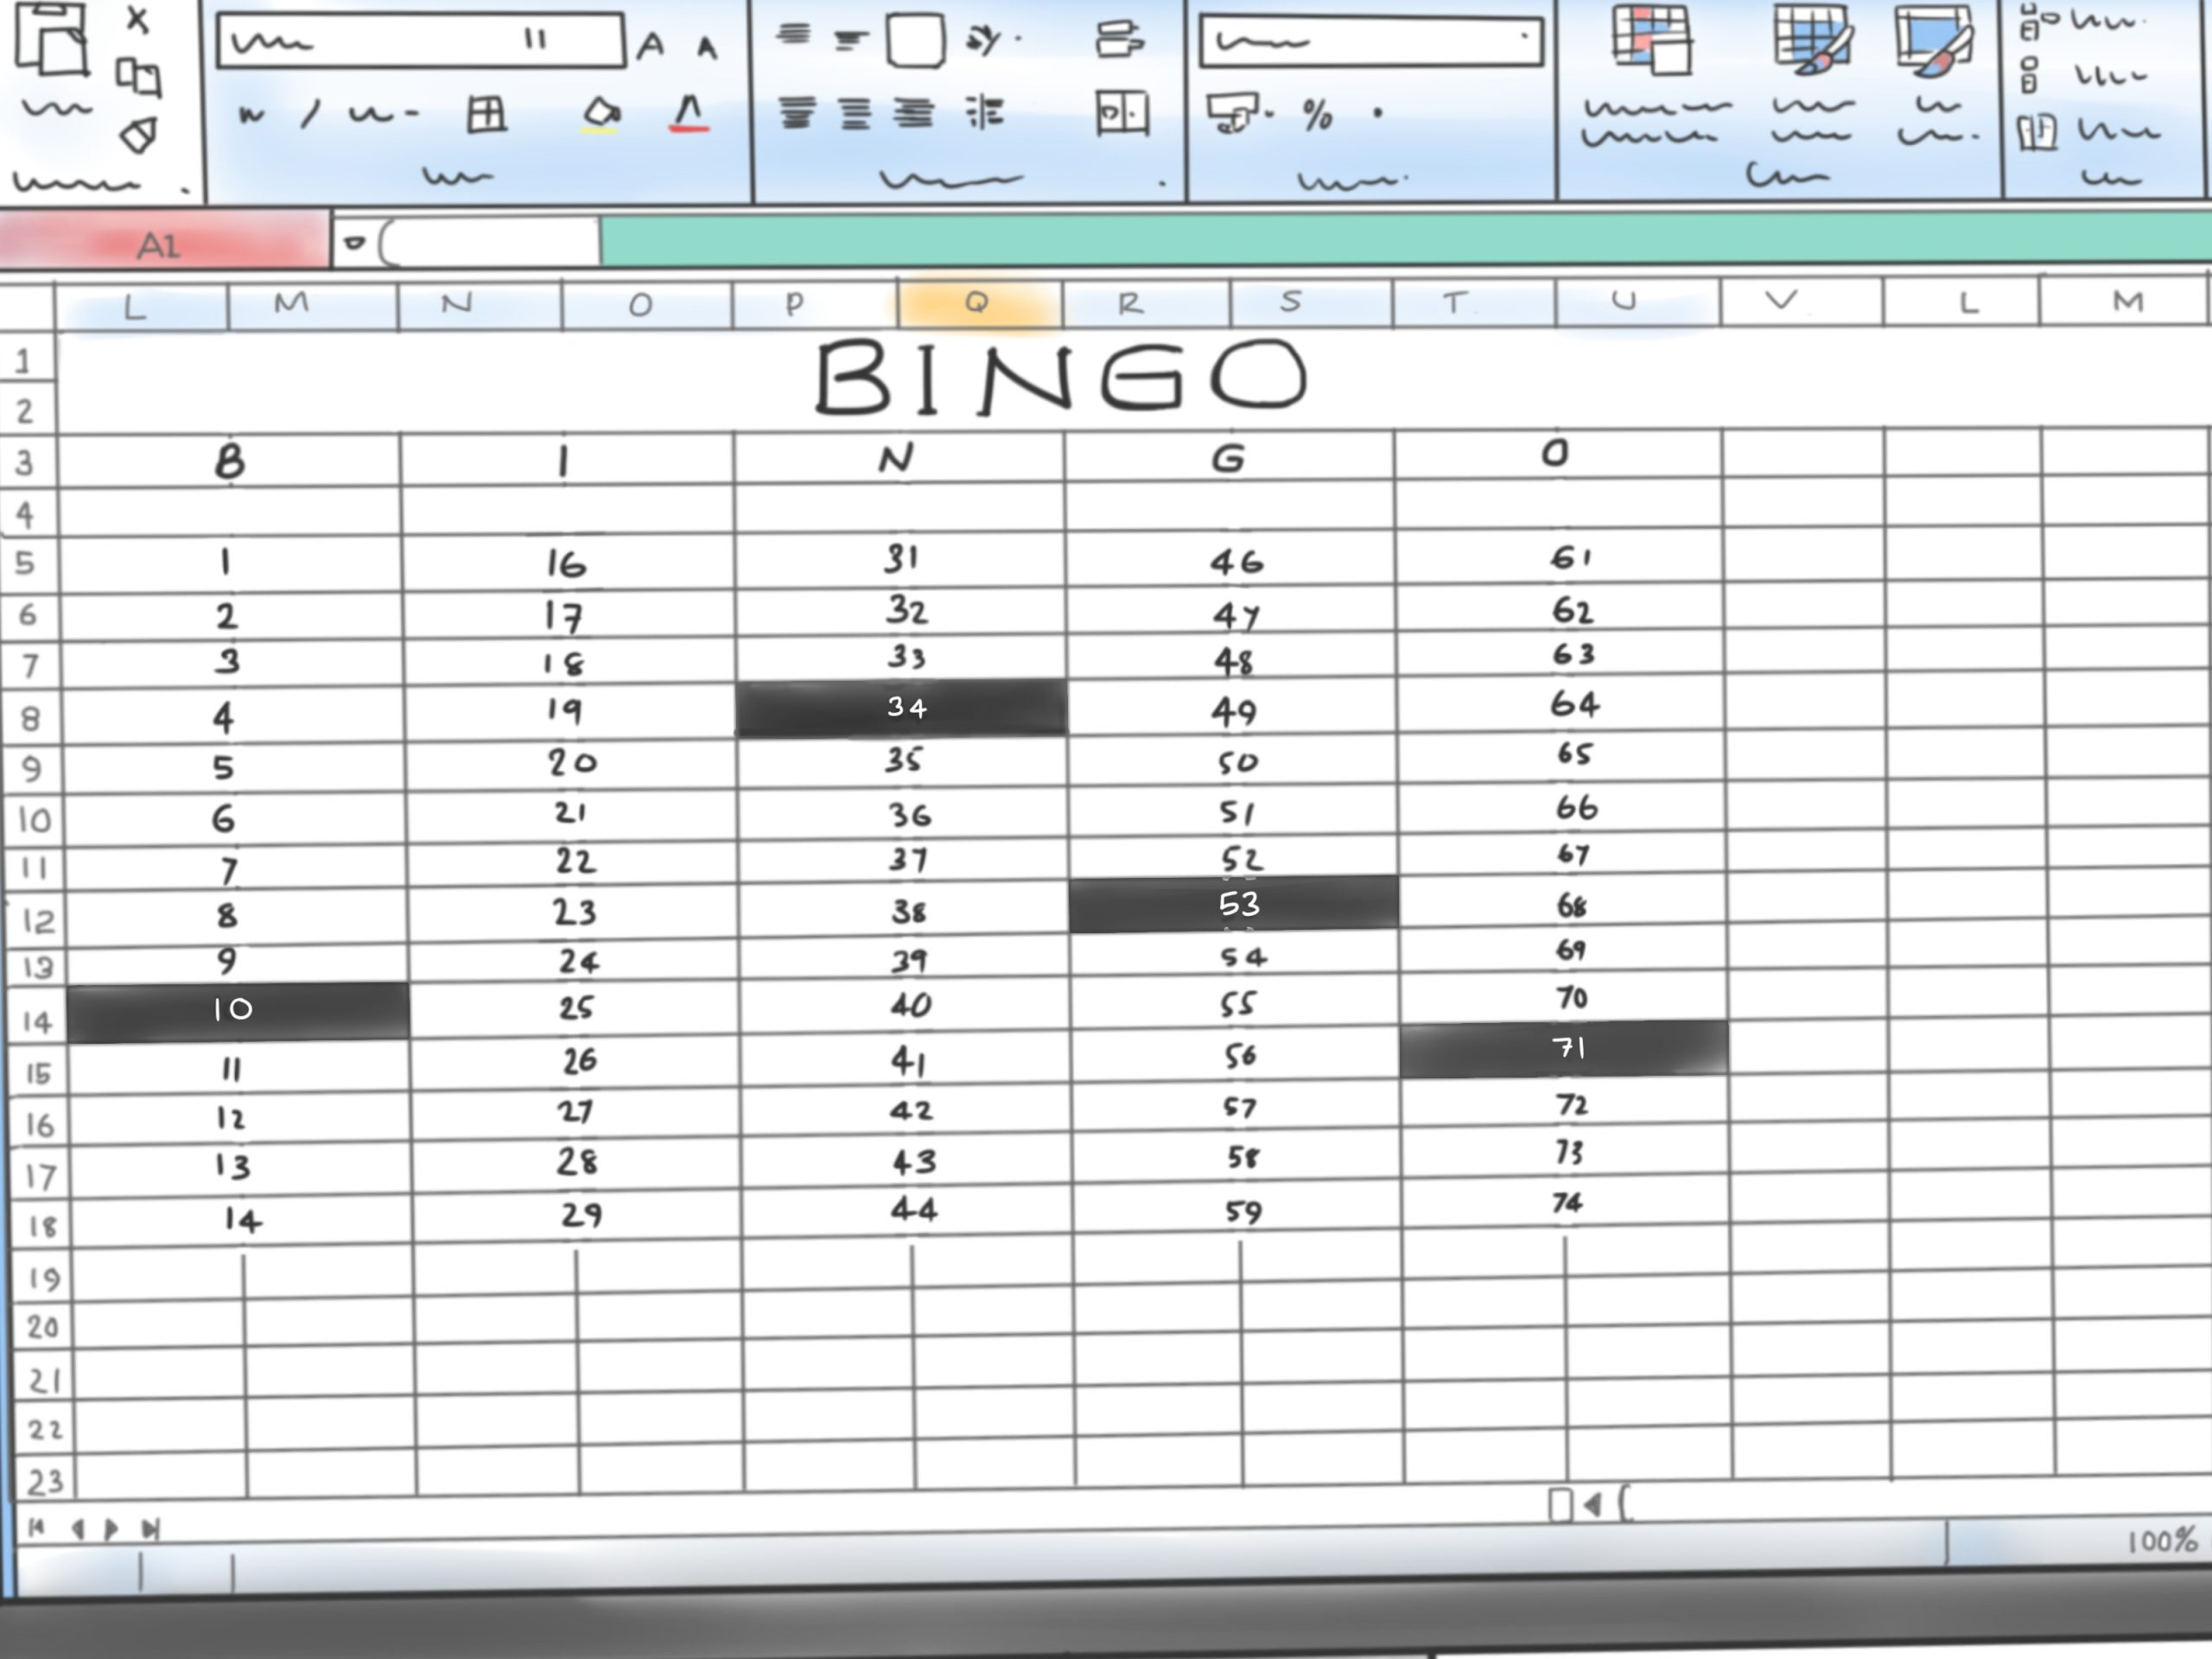 How To Make A Bingo Game In Microsoft Office Excel 2007: 9 Steps